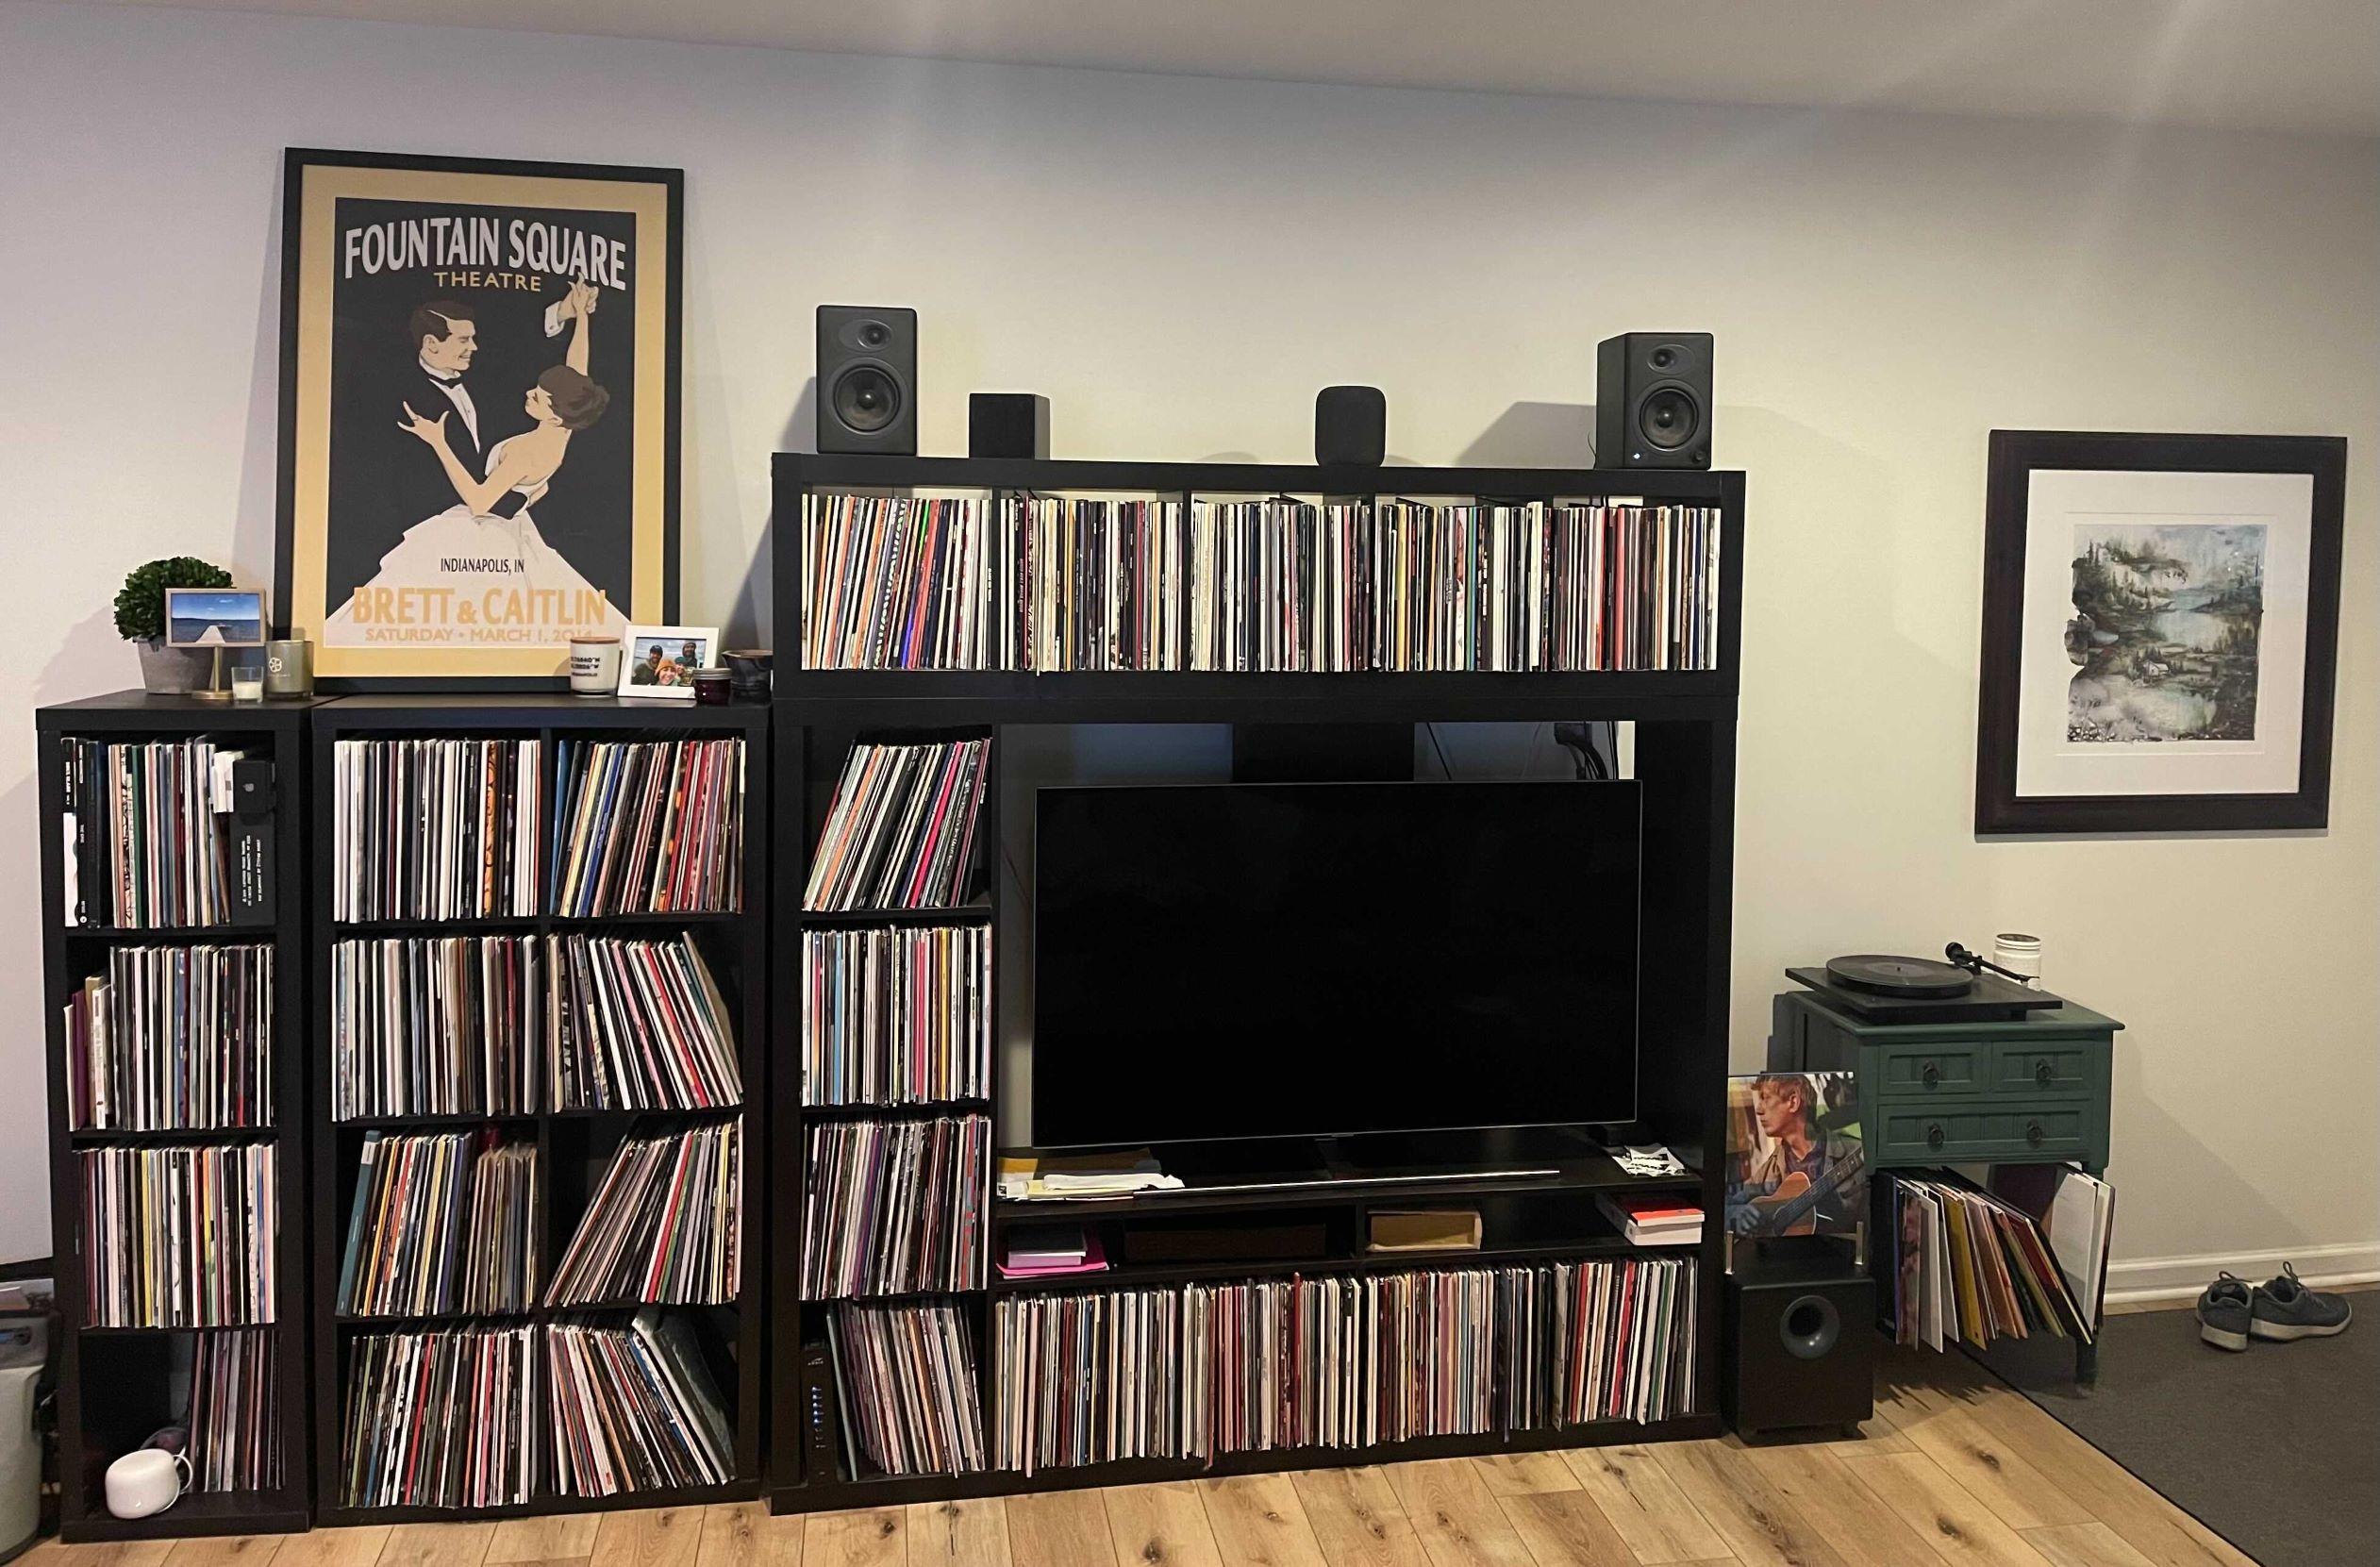 What a 1000+ record collection can teach marketers about creating the right message